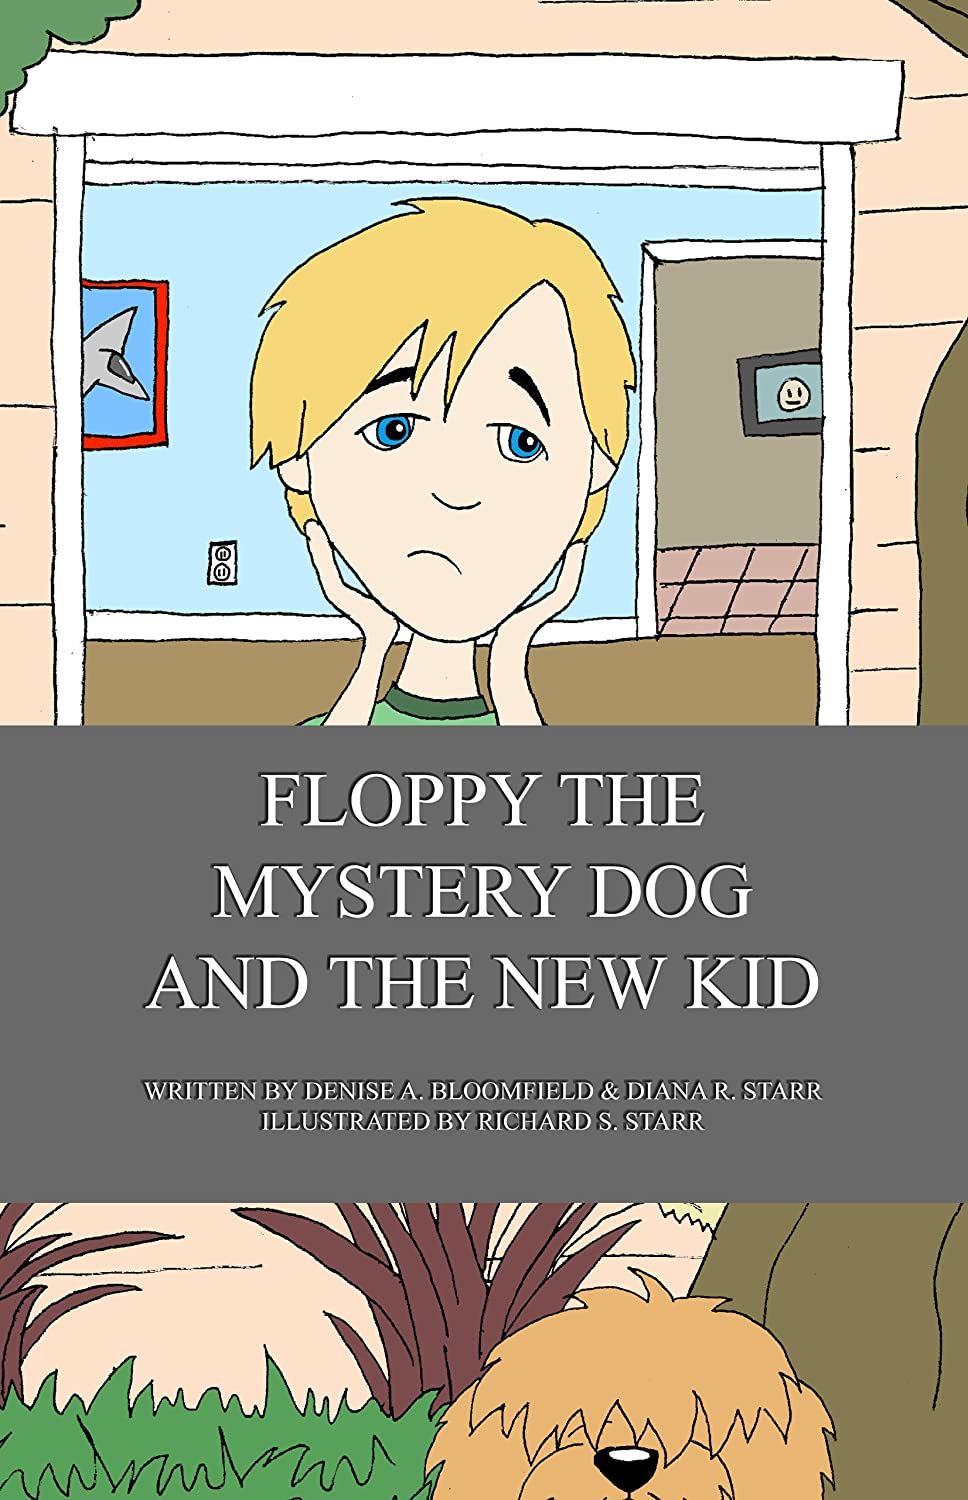 Floppy the Mystery Dog and The New Kid by Diana R. Starr